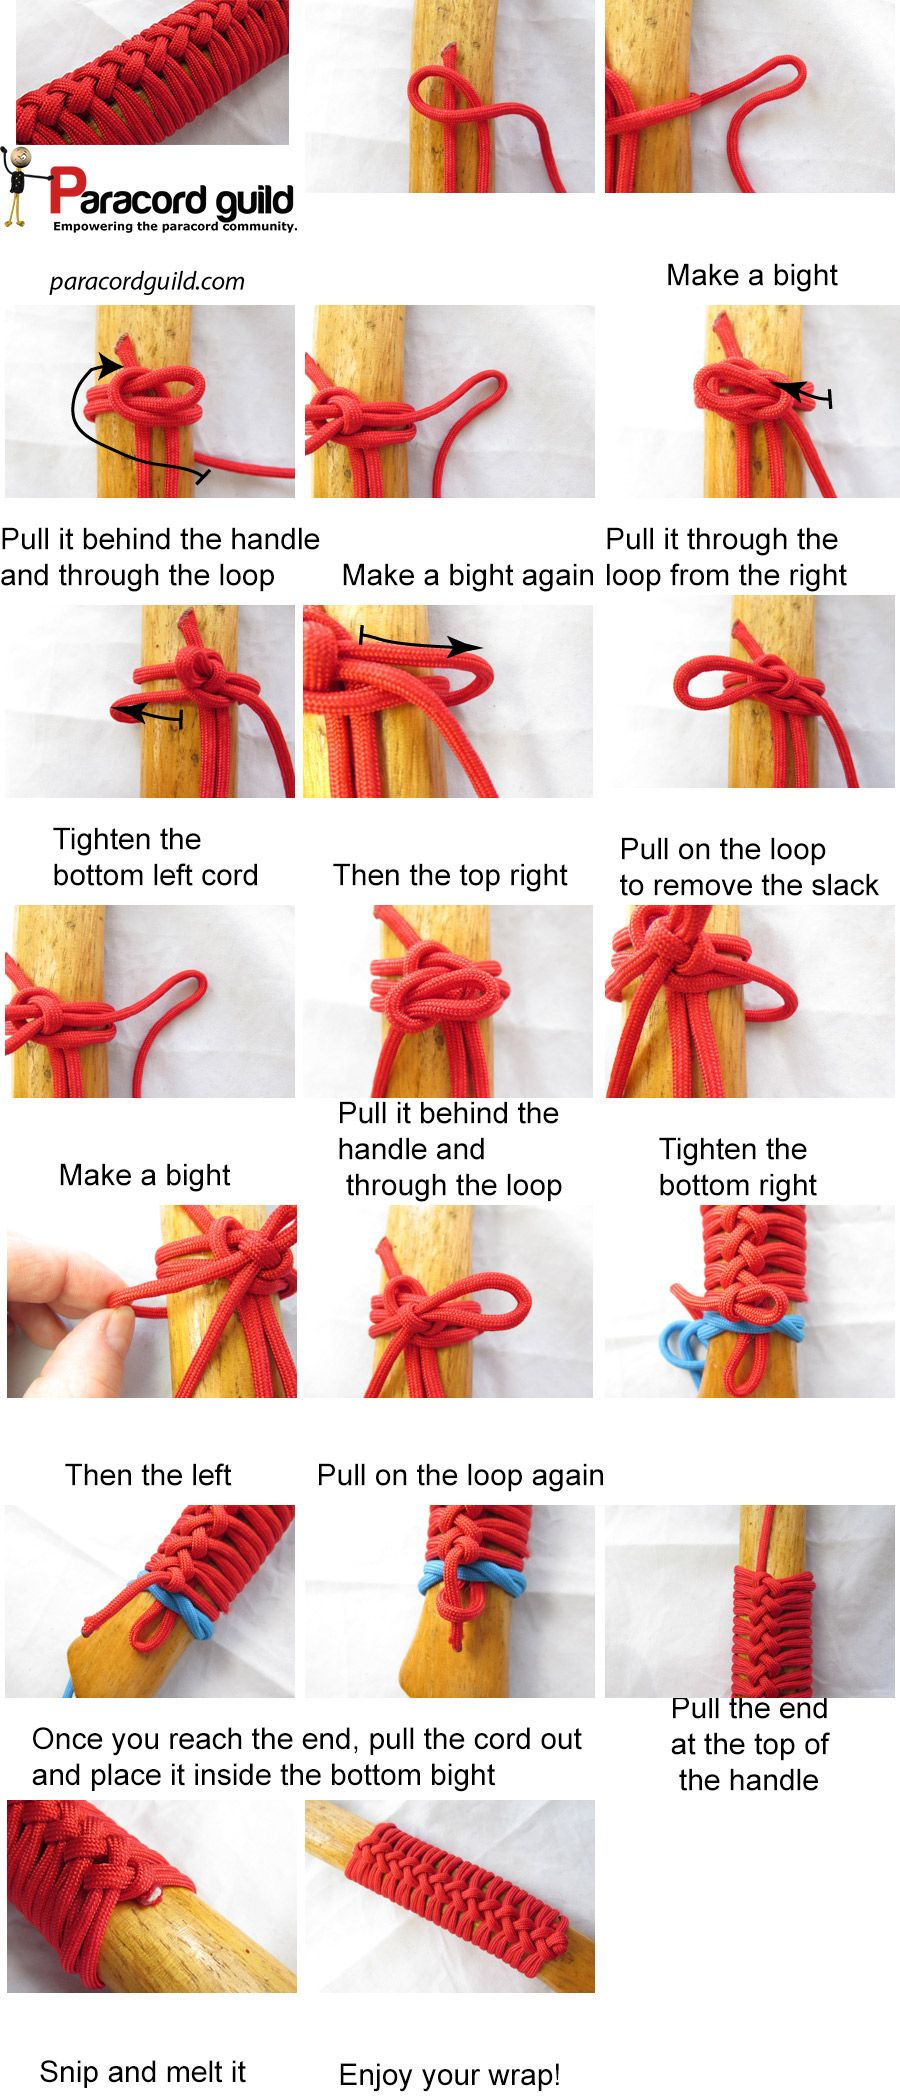 How To Make A Paracord Axe Handle Wrap This Looks So